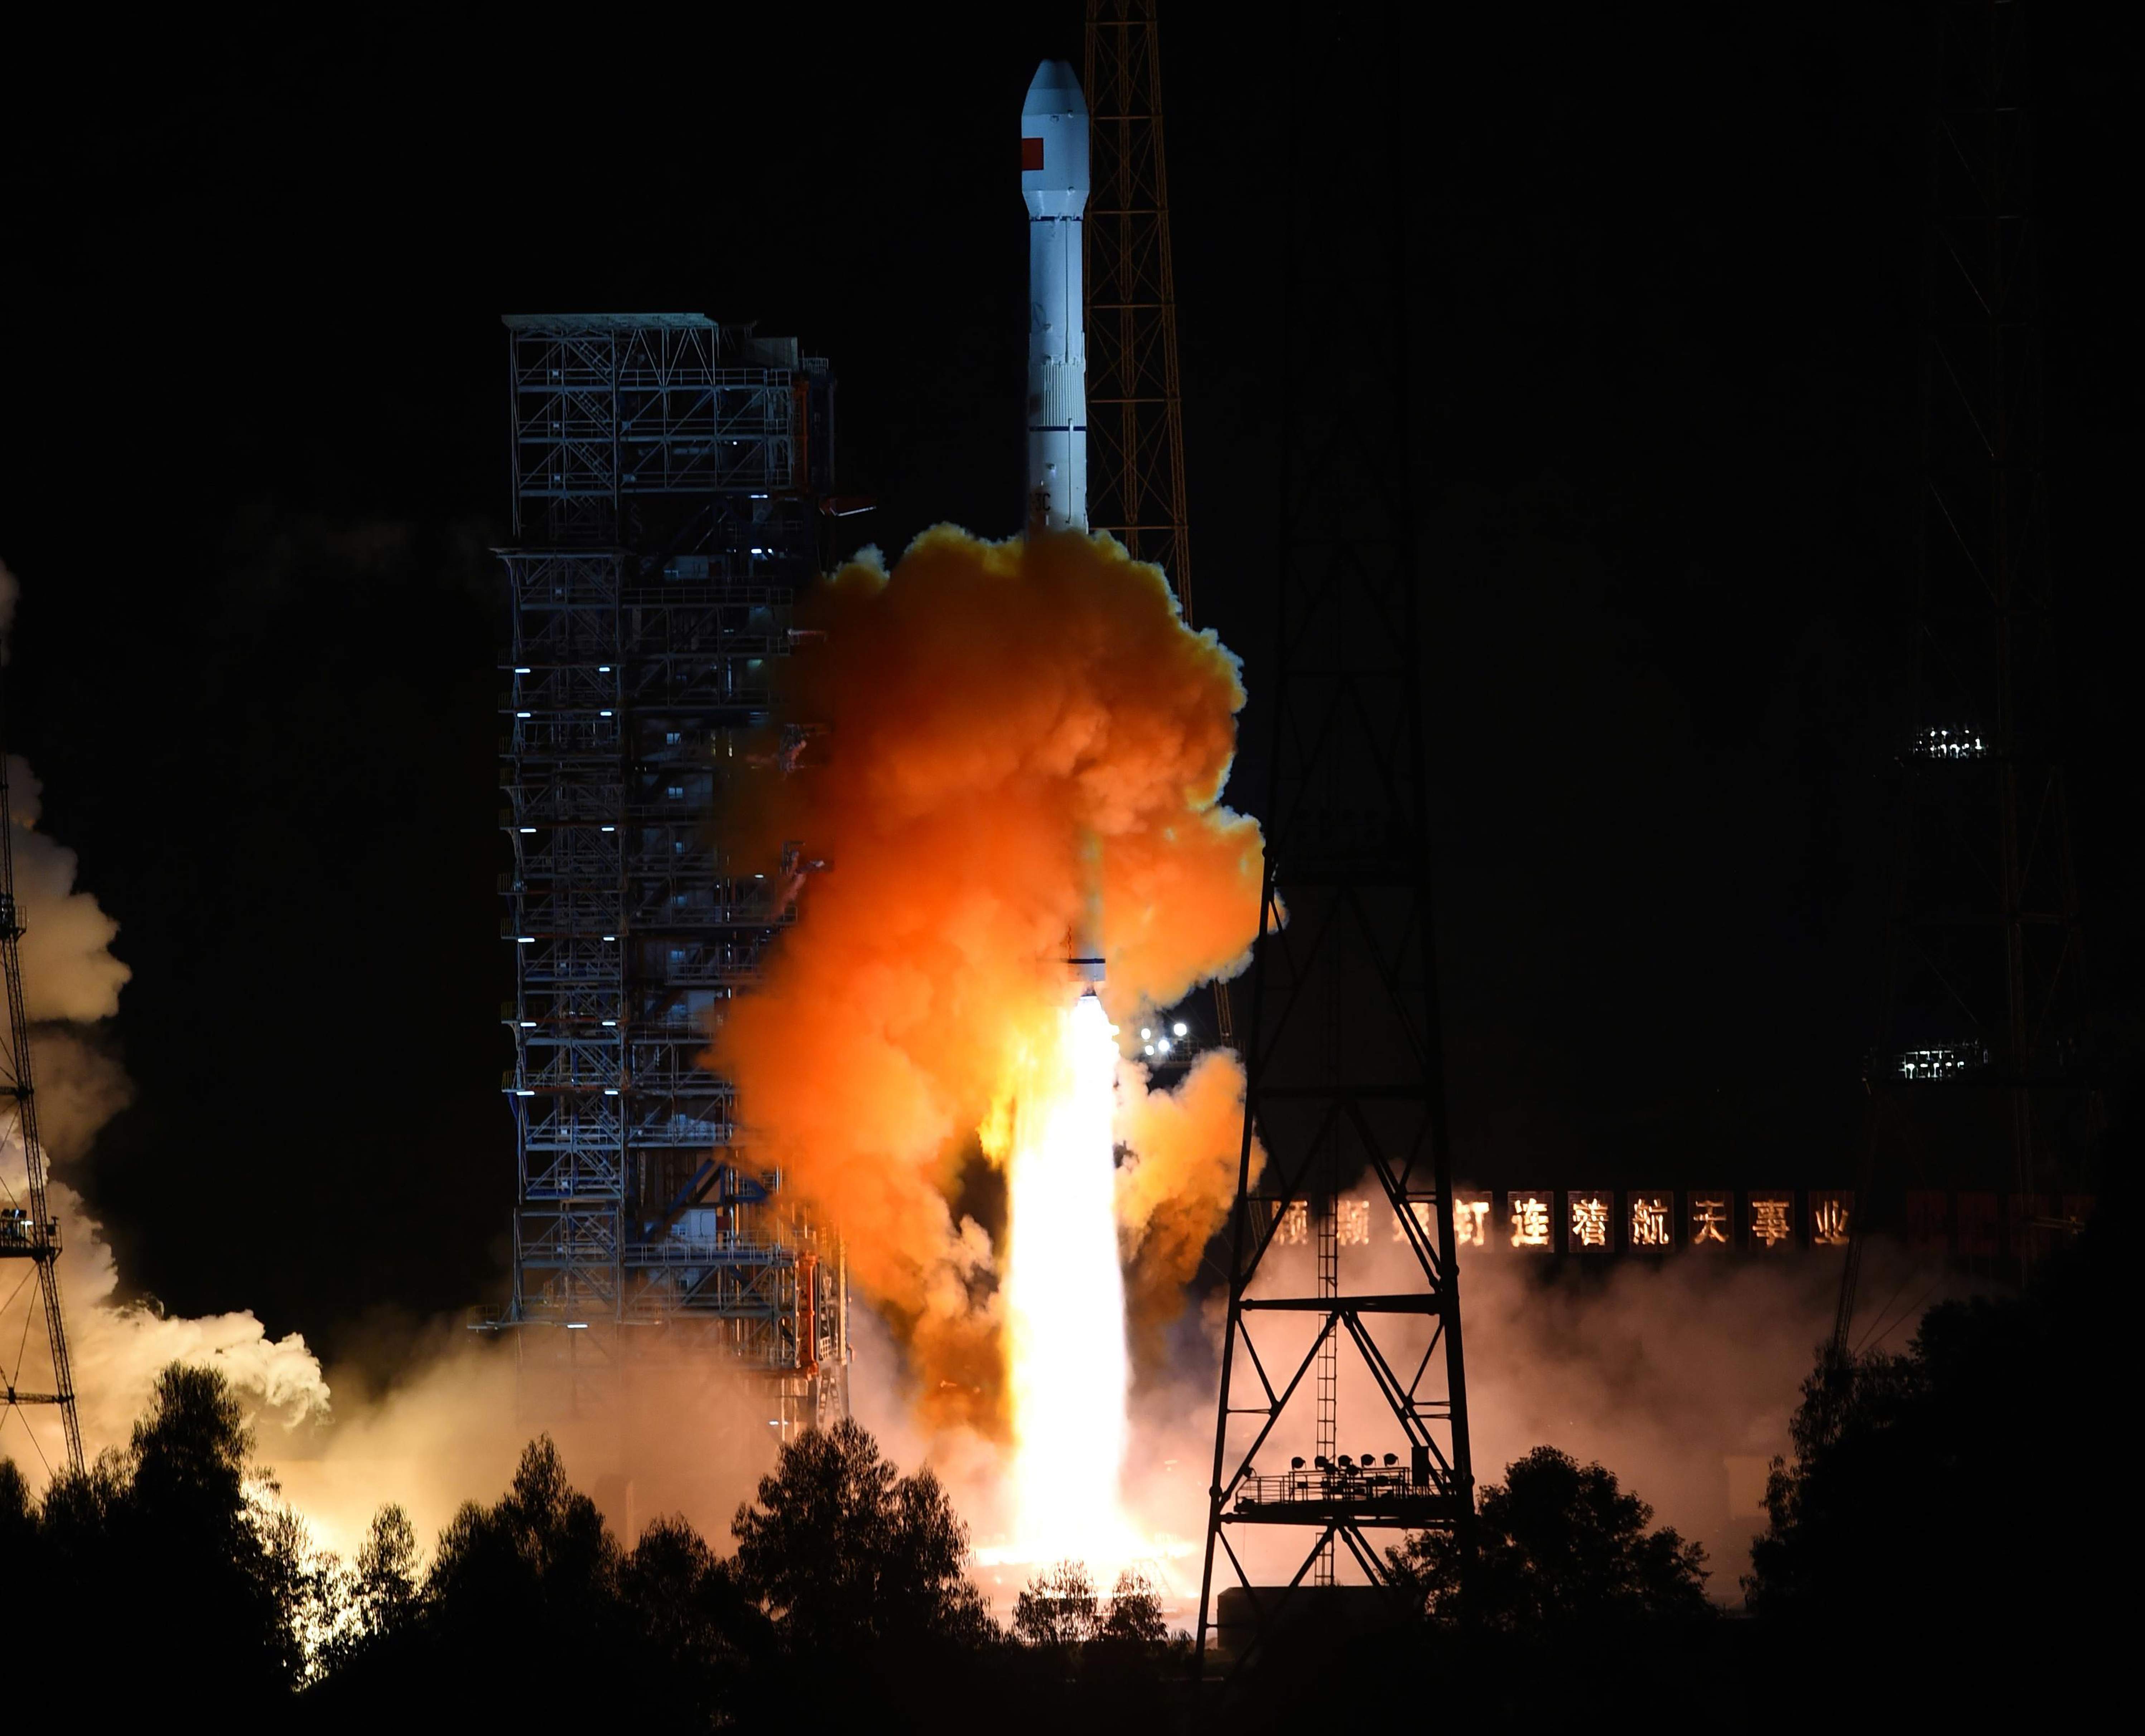 An unmanned spacecraft is launched from the Xichang Satellite Launch Center in southwest China's Sichuan Province on Oct. 24, 2014